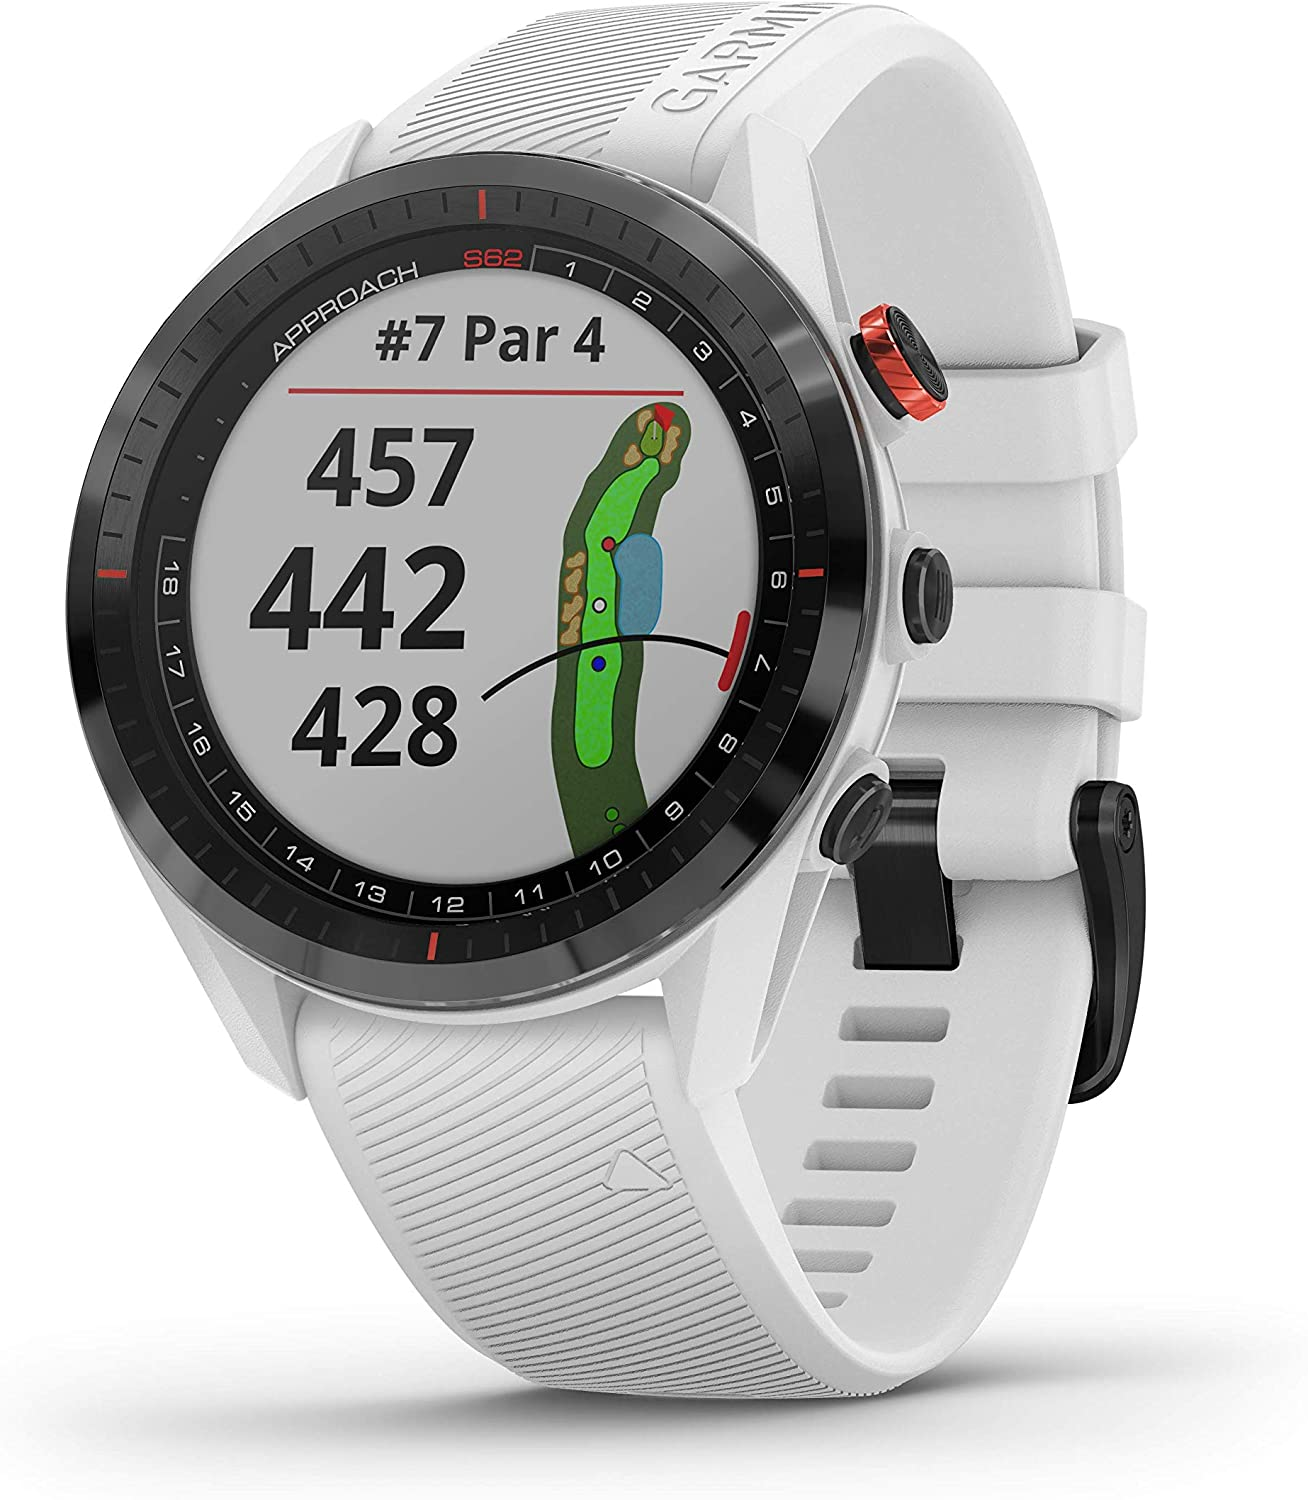 Garmin Approach S62, Premium Golf GPS Watch, Built-in Virtual Caddie, Mapping and Full Color Screen, White